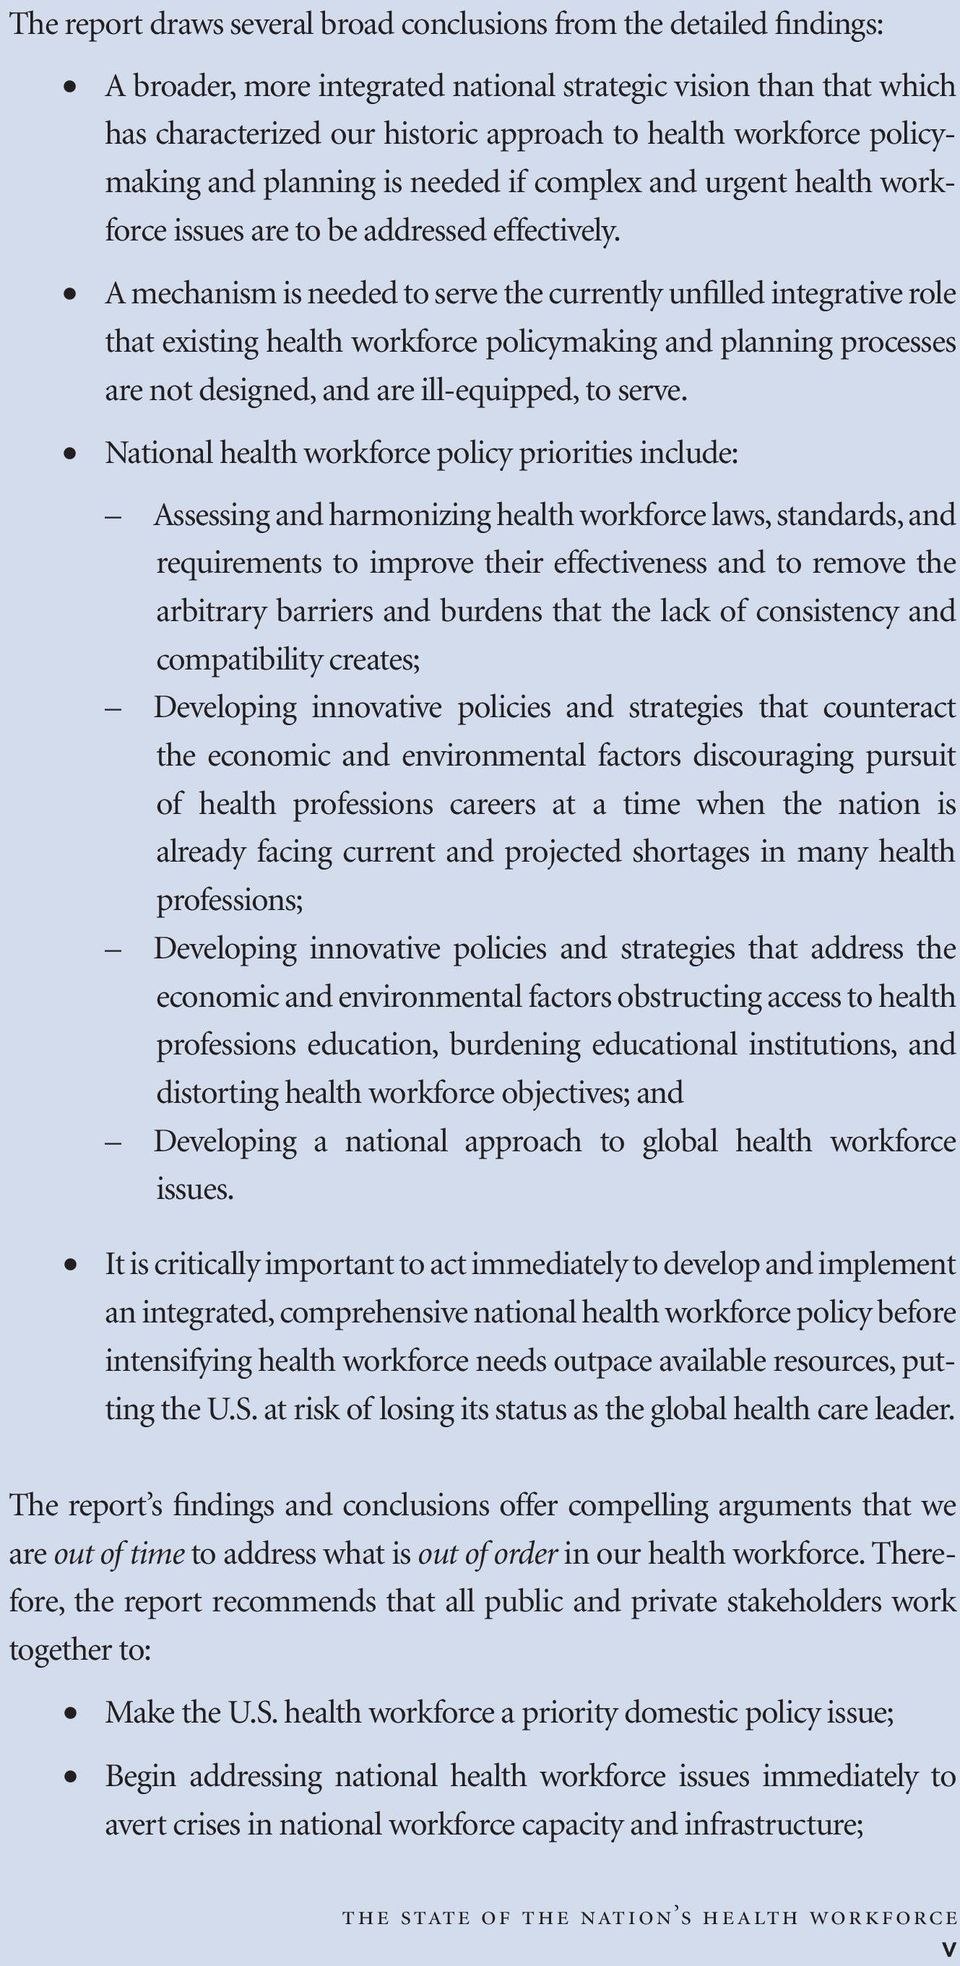 A mechanism is needed to serve the currently unfilled integrative role that existing health workforce policymaking and planning processes are not designed, and are ill-equipped, to serve.